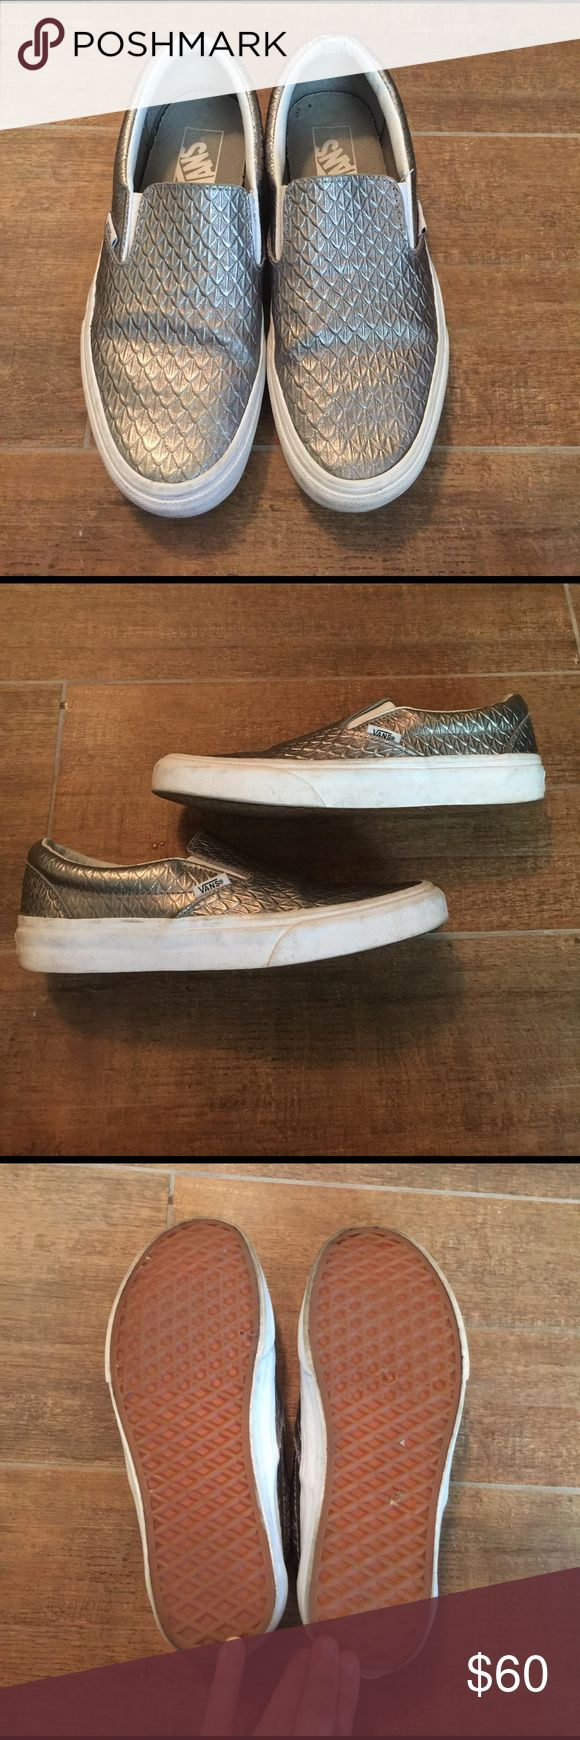 Silver Metallic Leather Vans Slip one Super cute, all leather, metallic silver Vans slip ons. Only worn a couple times. Some dirt in white edges, as shown, should be easy to remove with proper cleaning. Perfect every day shoe with a little bling! vans Shoes Sneakers